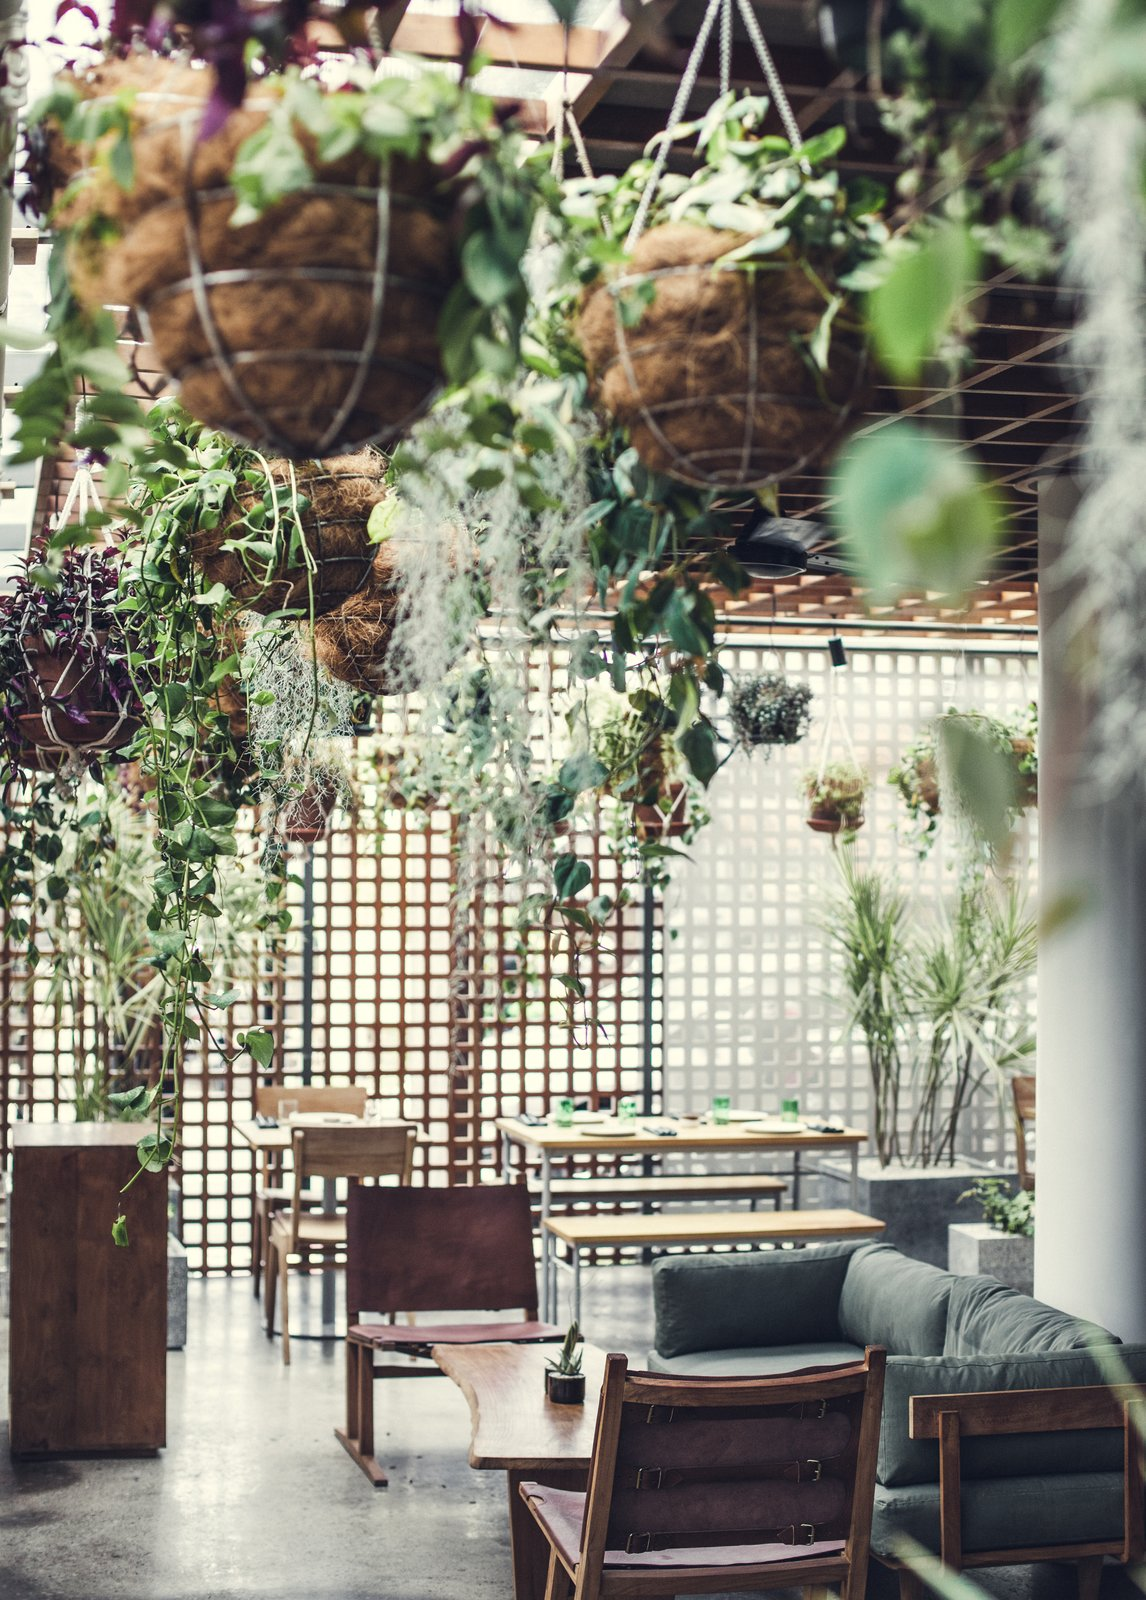 Hanging plants create an atrium atmosphere in Eat & Drink, which is open for service all day.